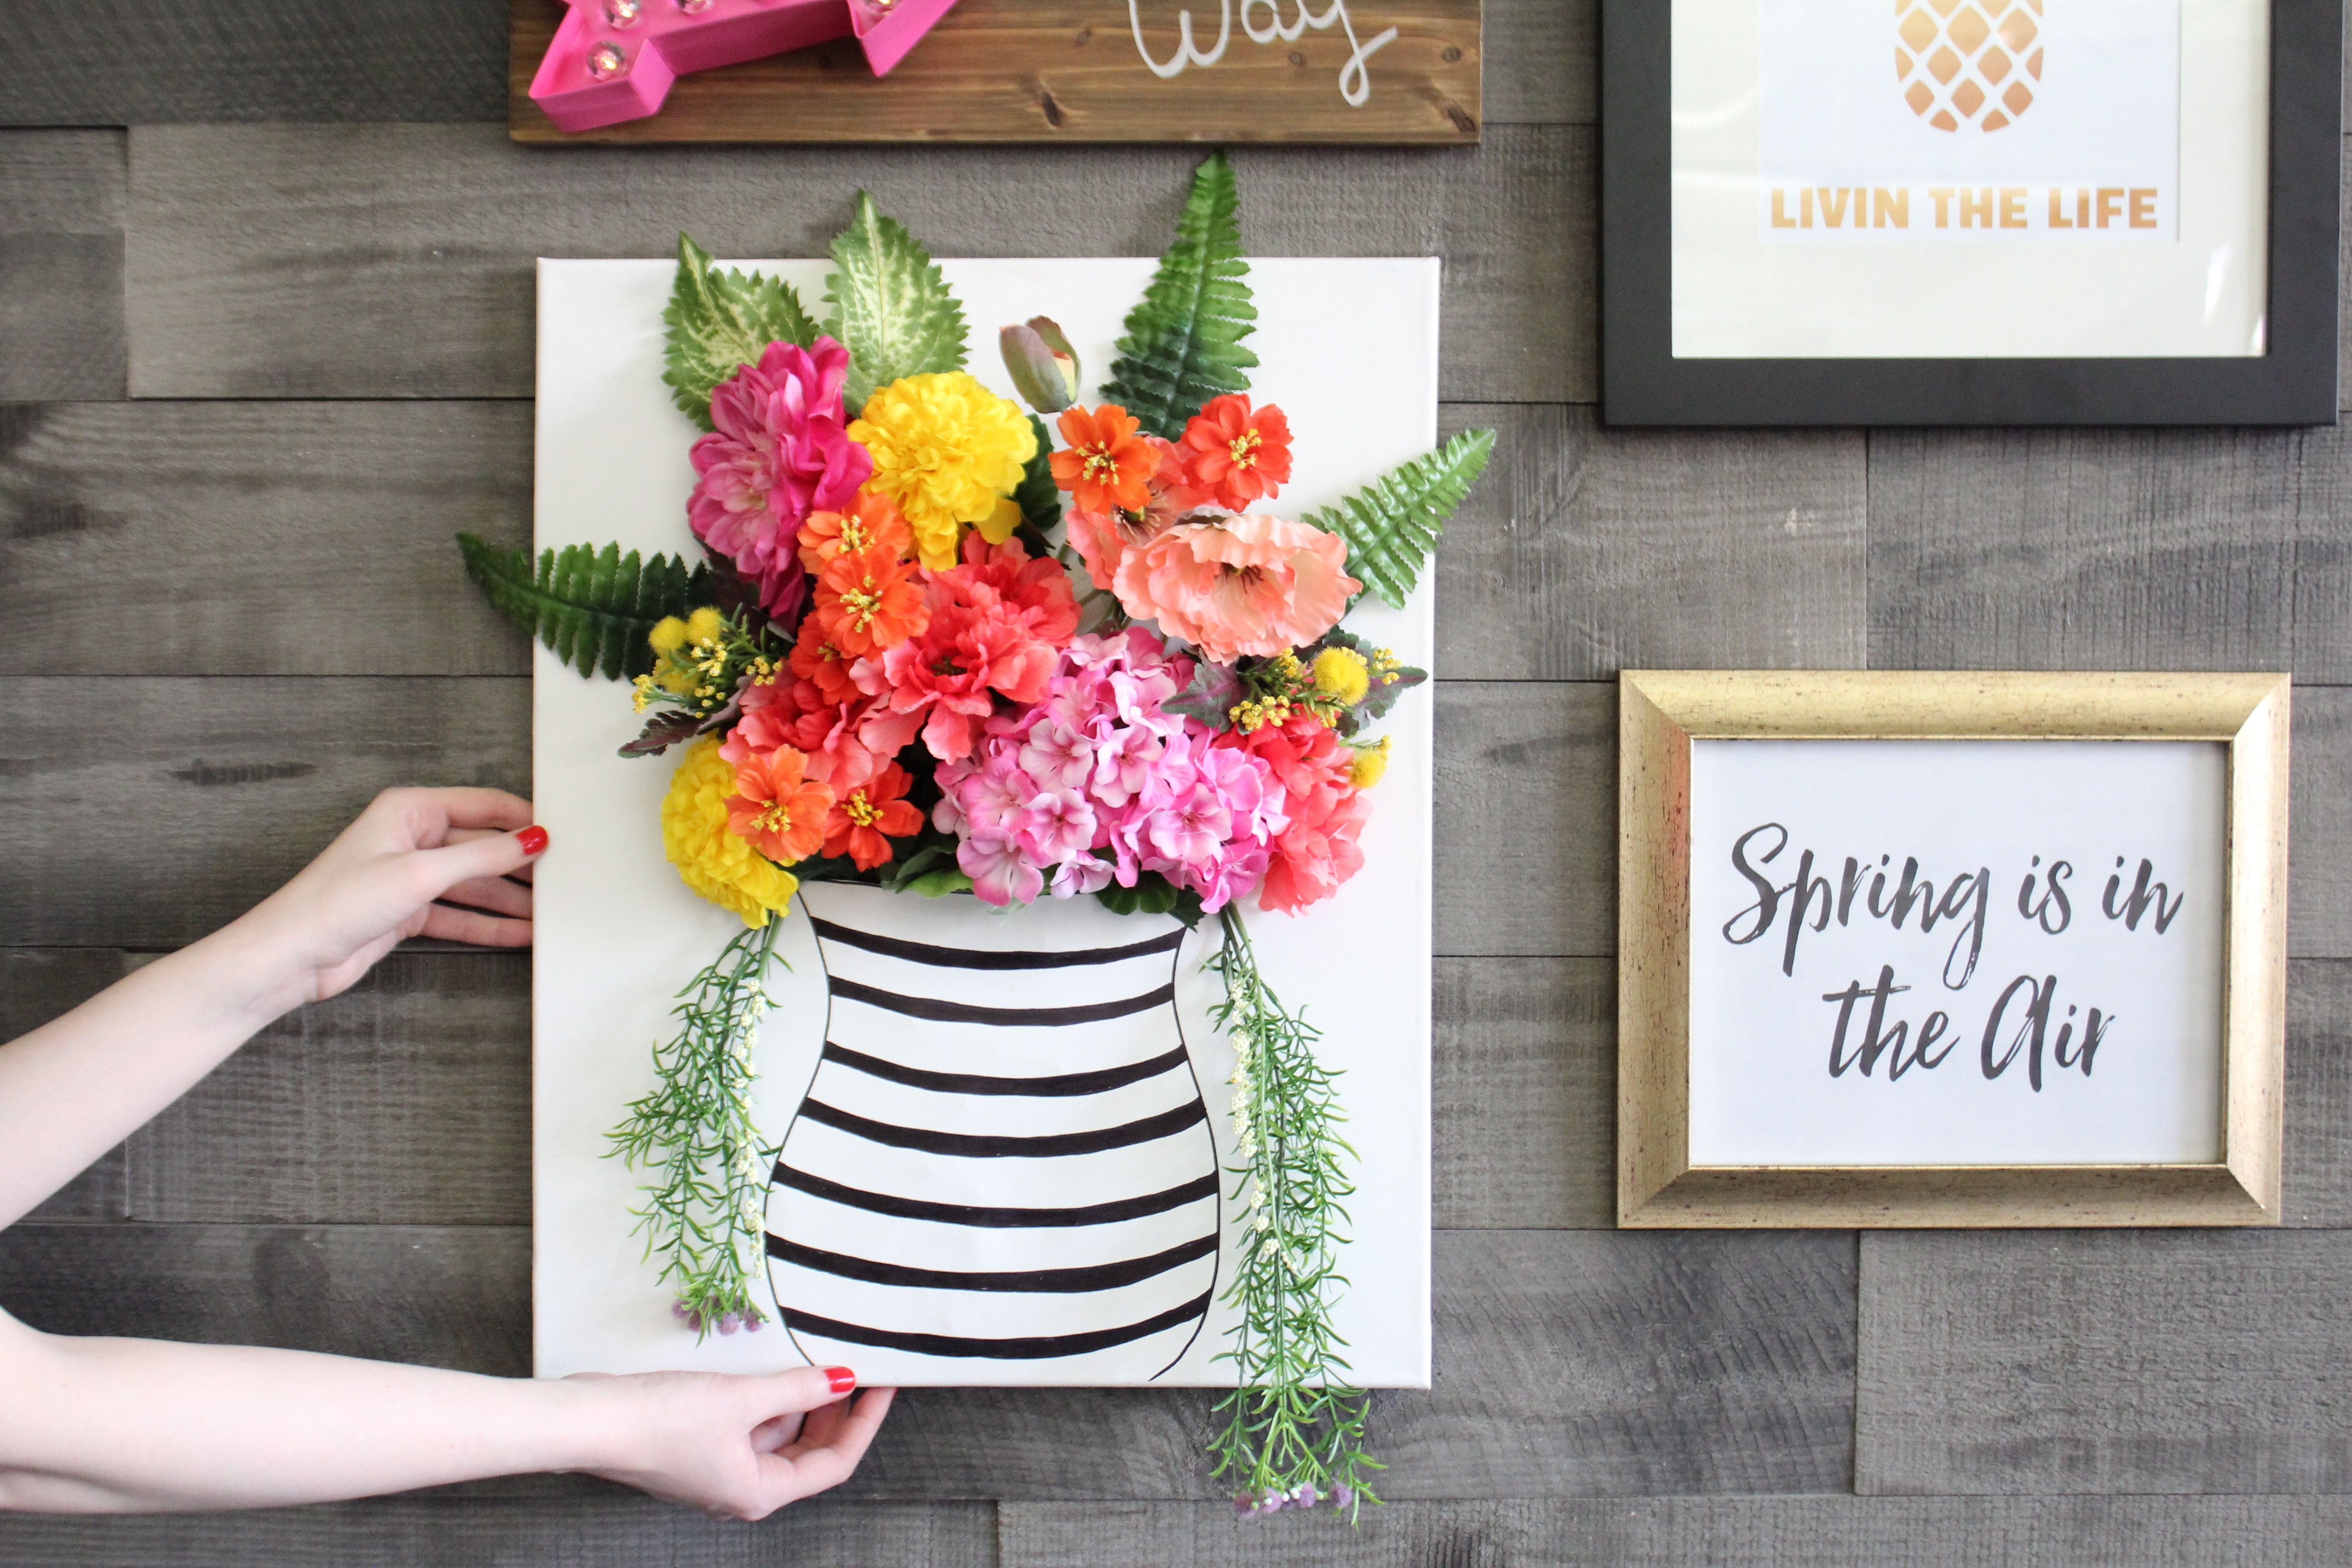 Watch how to make your own d floral wall art with this easy diy